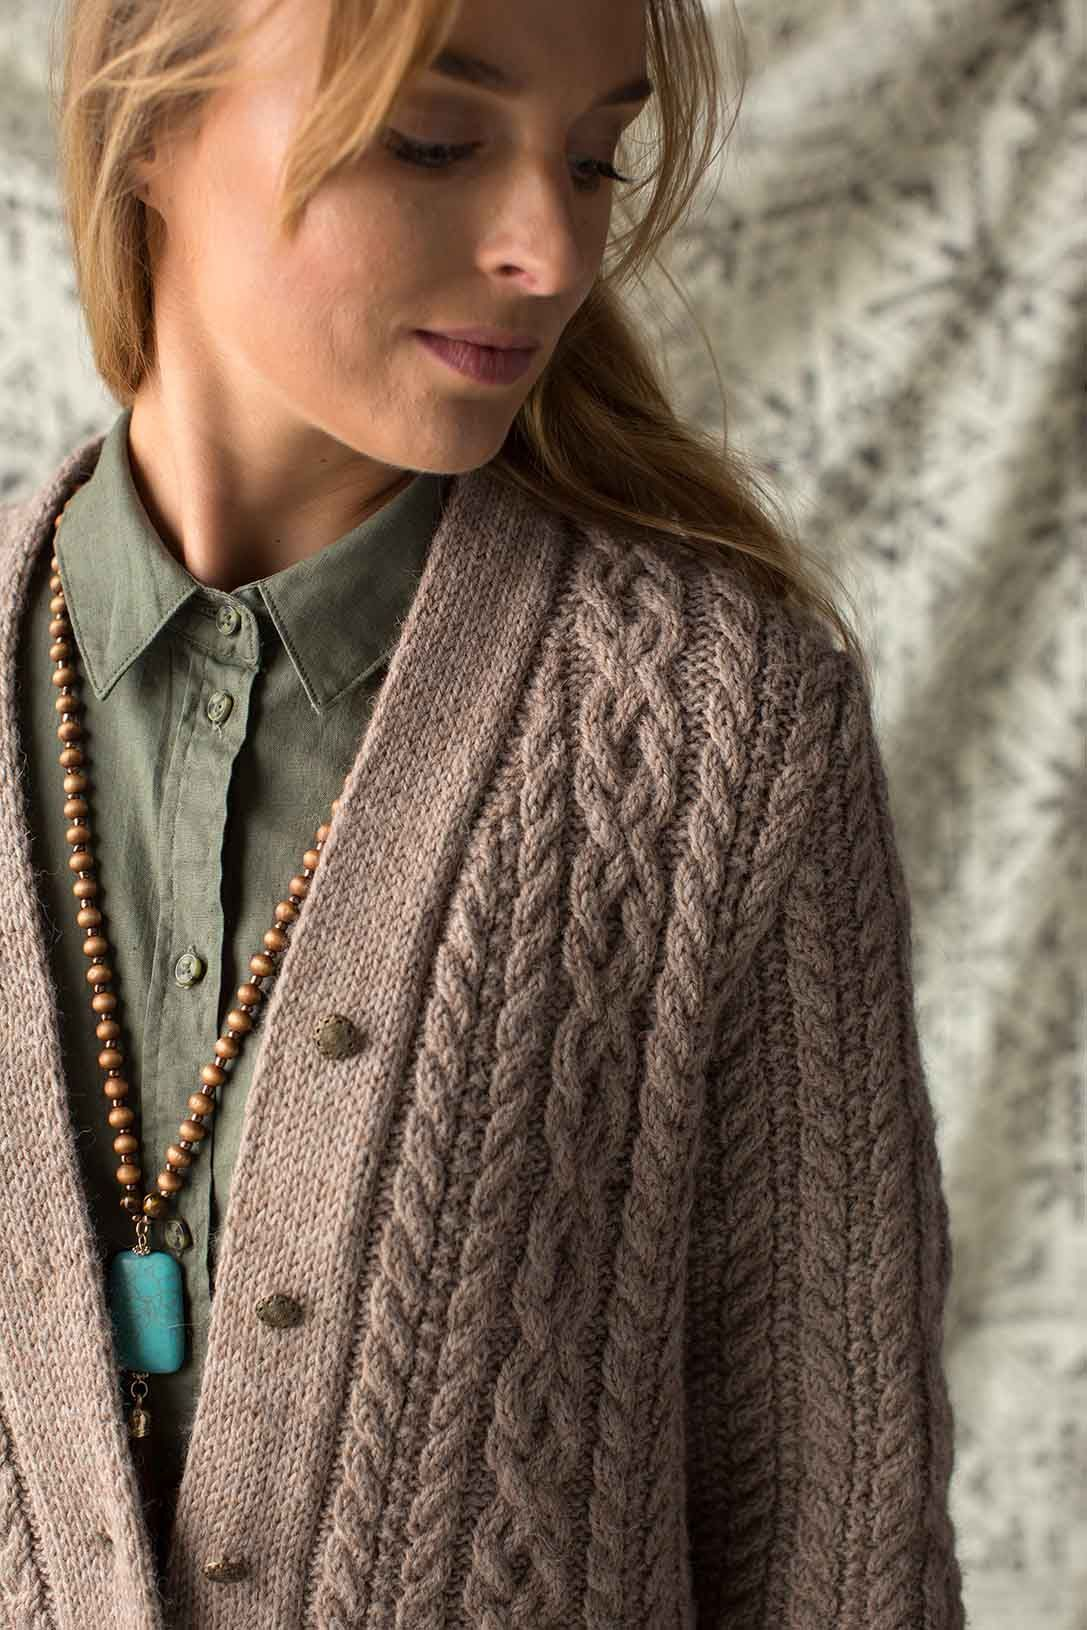 6ba30eae8 Curl up with the Clear Creek Cardigan by Sarah Solomon. This standout  modern classic cardigan knitting pattern showcases all the best